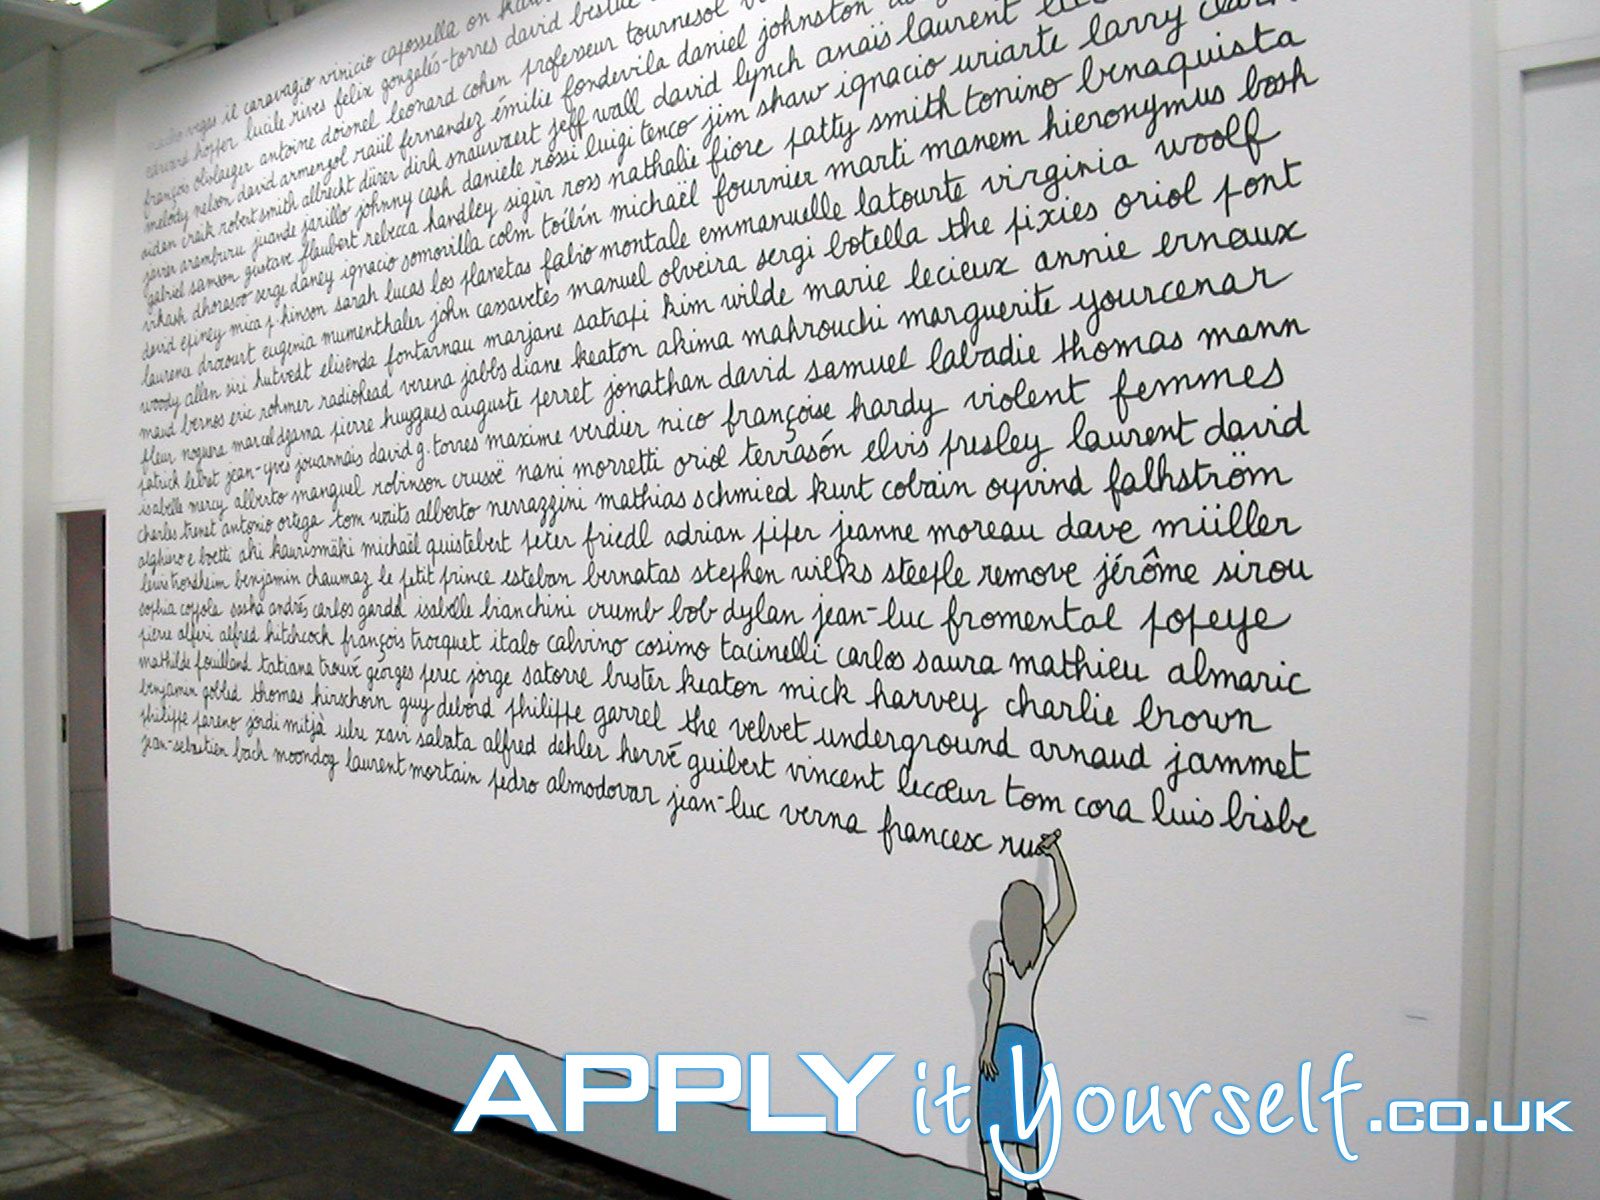 wall sticker, large, exposition, removable, wall mural